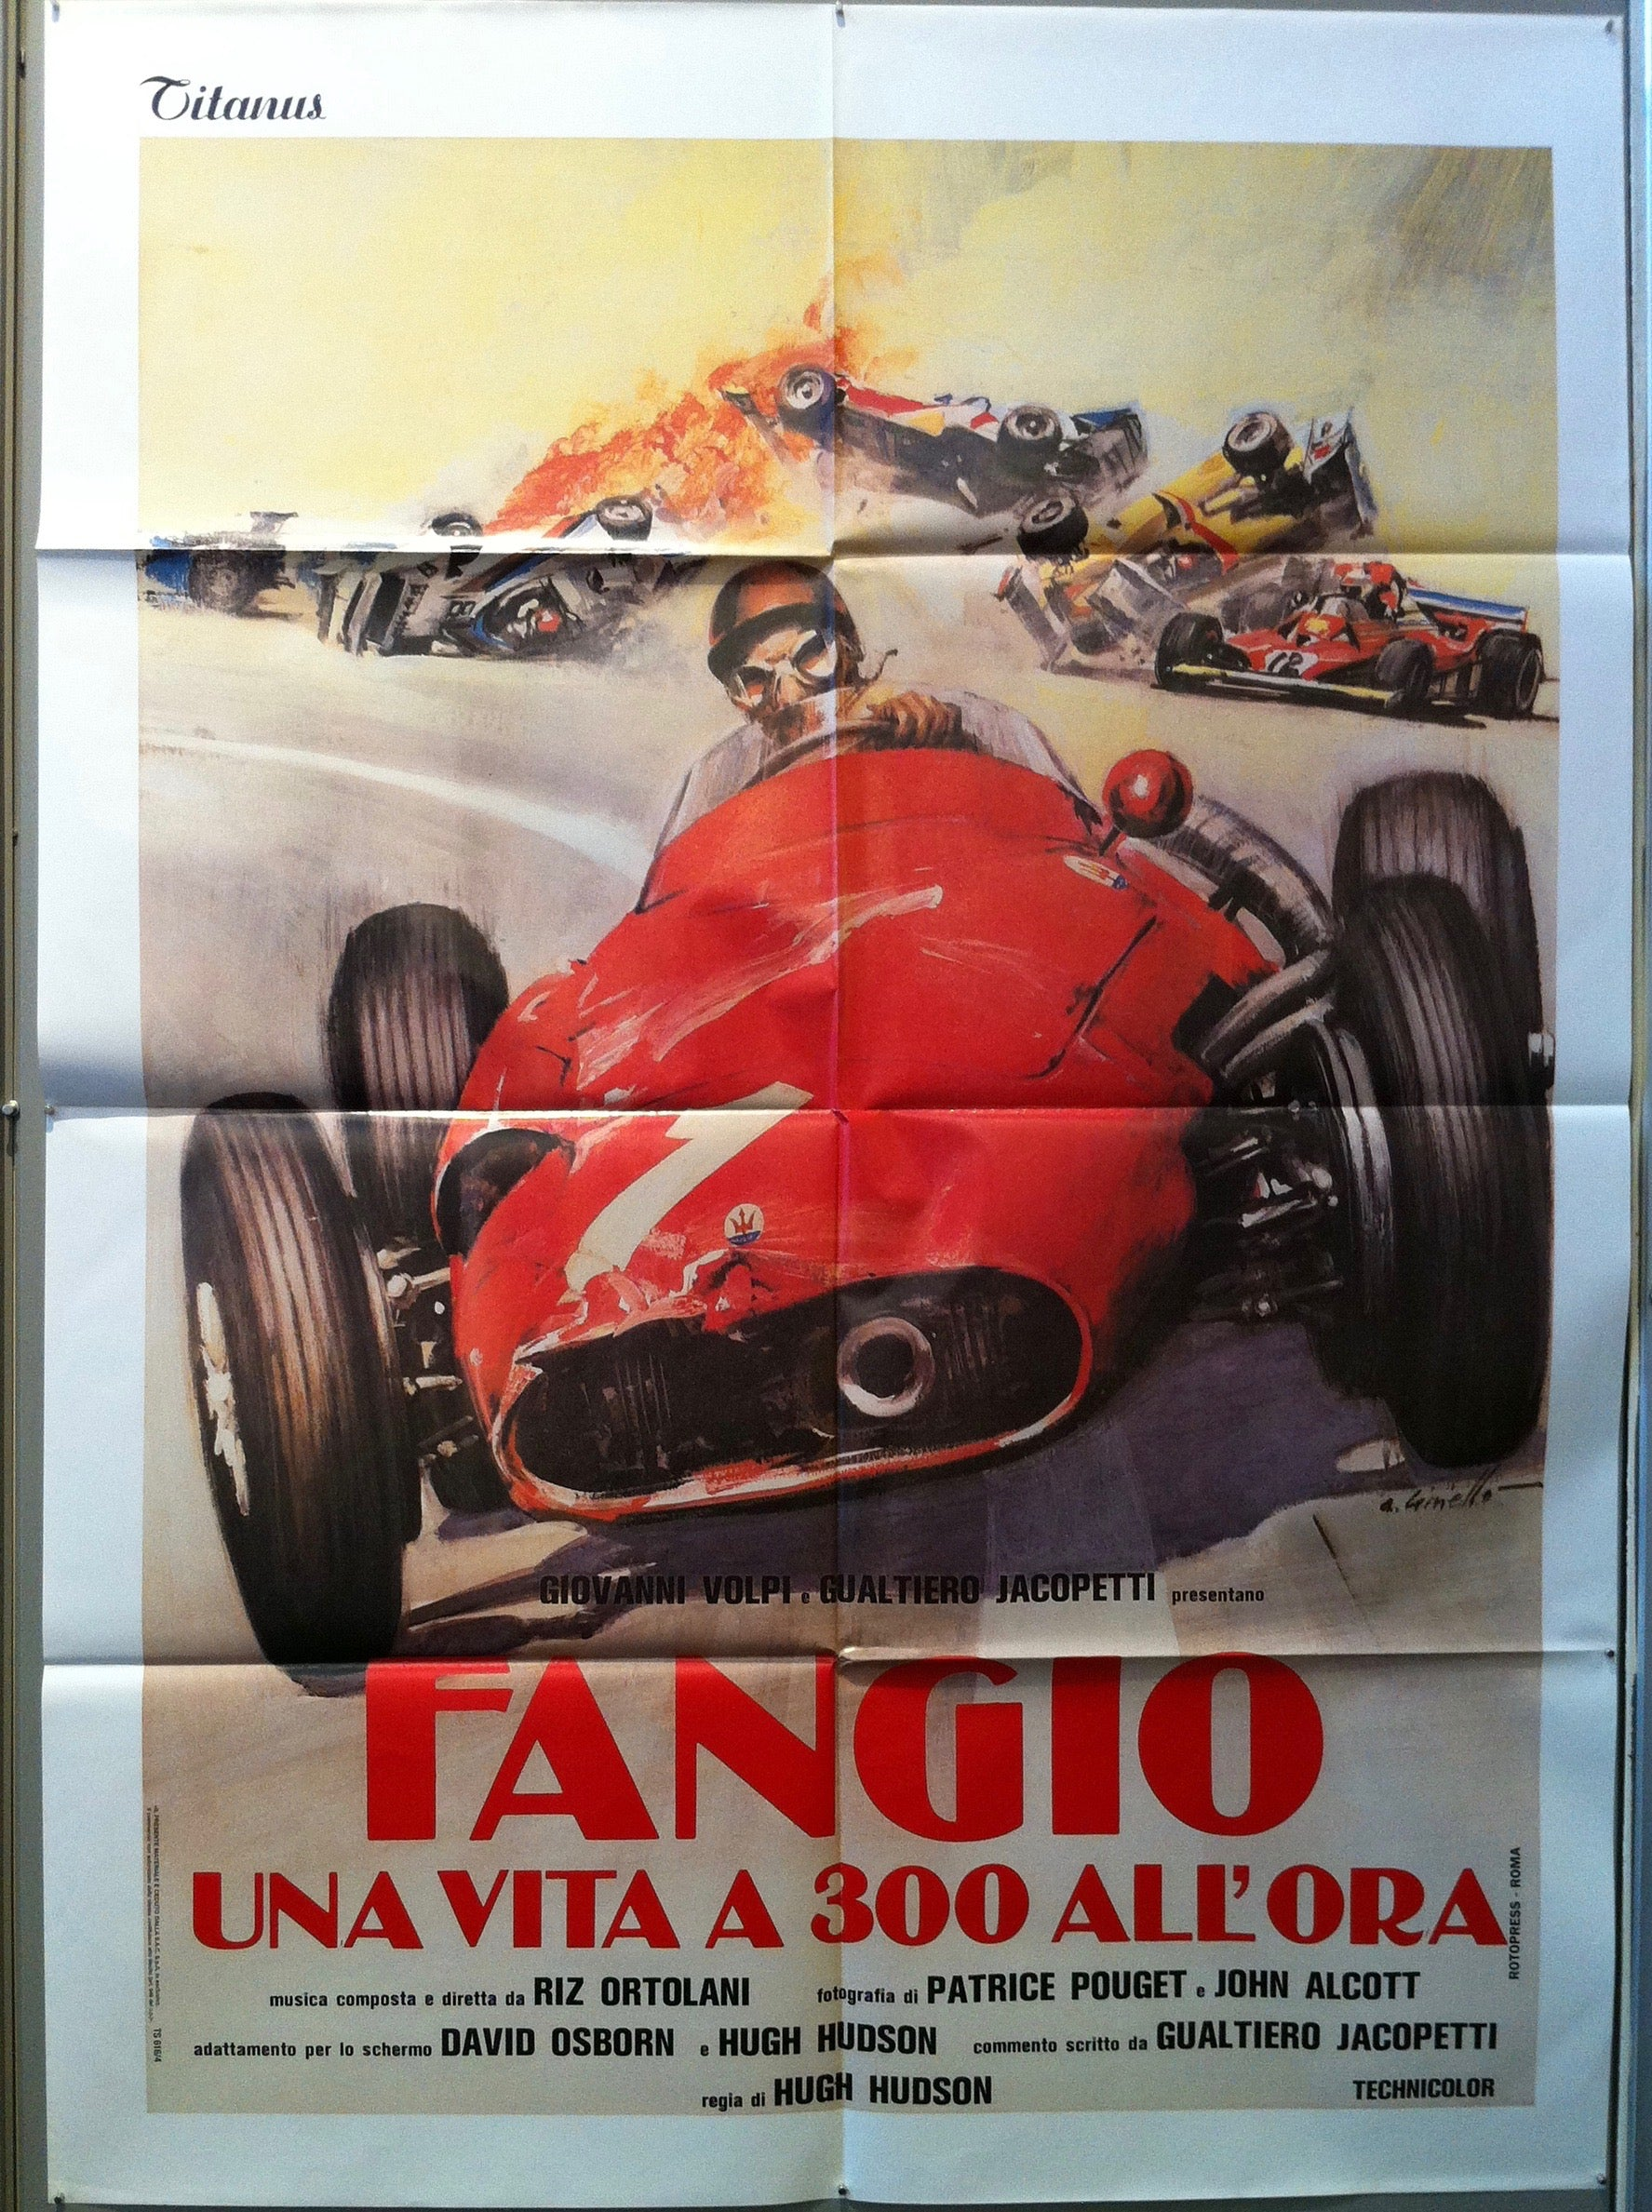 Fangio Una Vita a 300 All'Ora (Shorter)